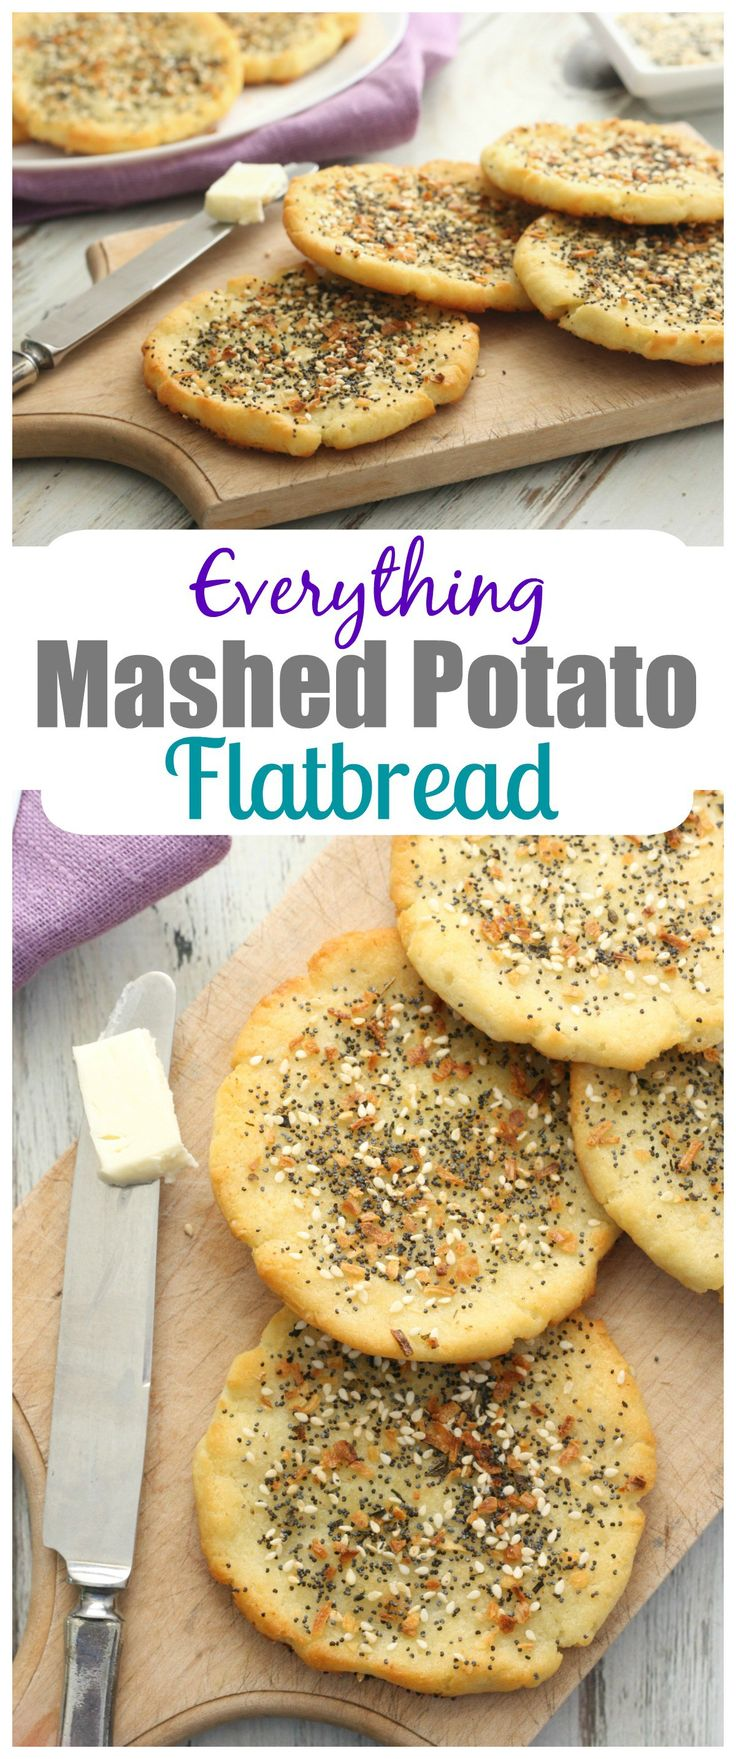 Everything Mashed Potato Flatbread [Gluten Free] Could use different spices, Not a big fan of Everything bagels.